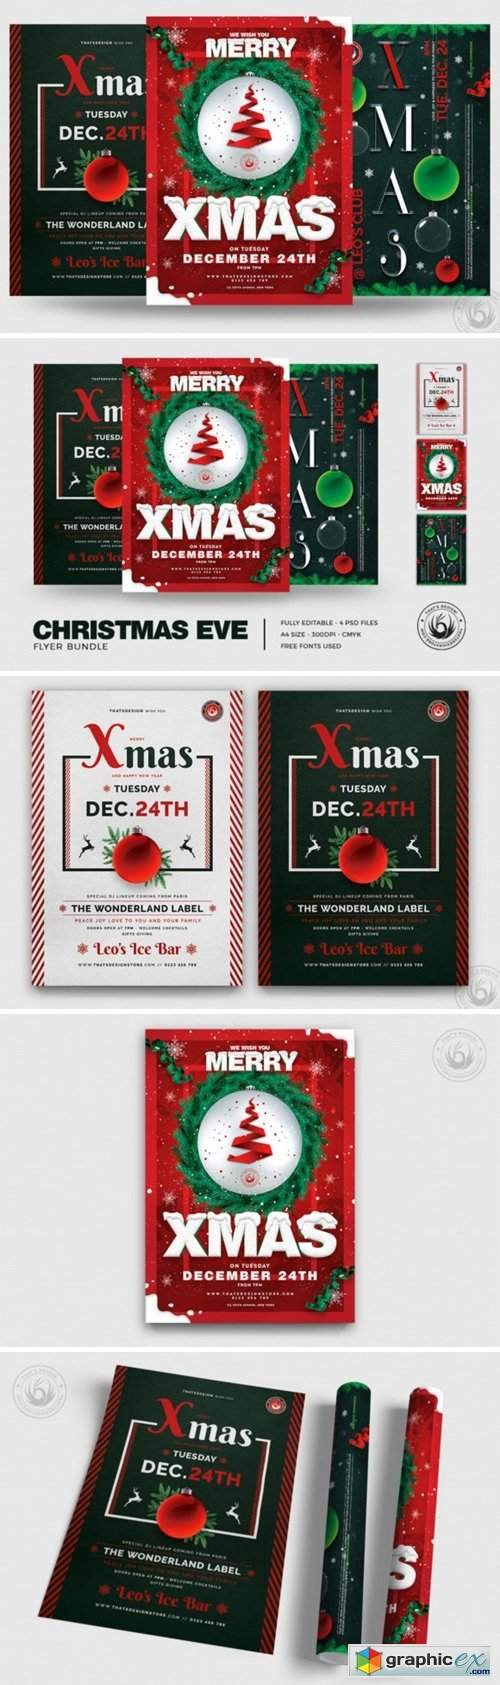 Christmas Eve Flyer Bundle V2